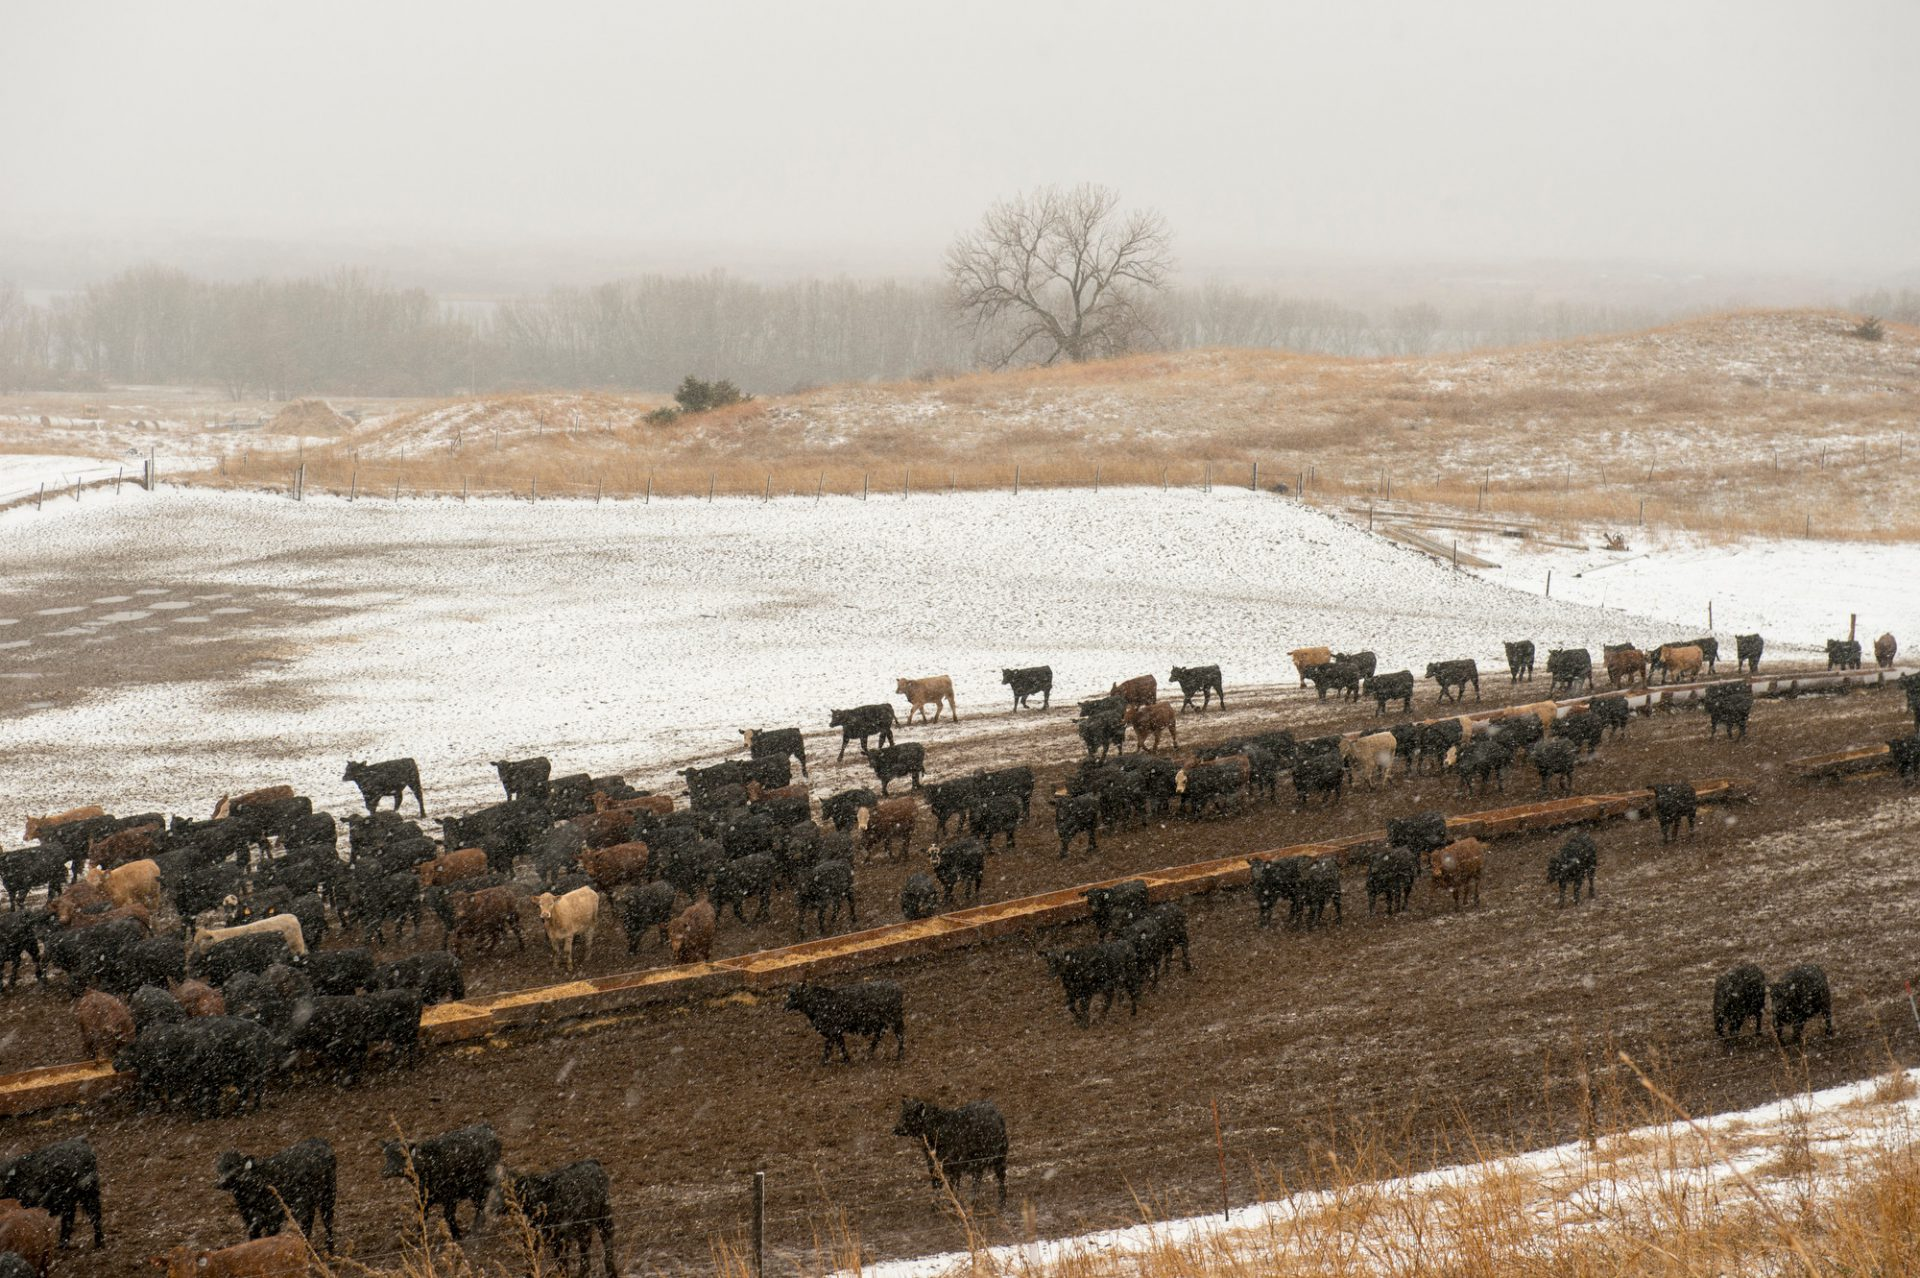 Photo: Cattle in a snowstorm.